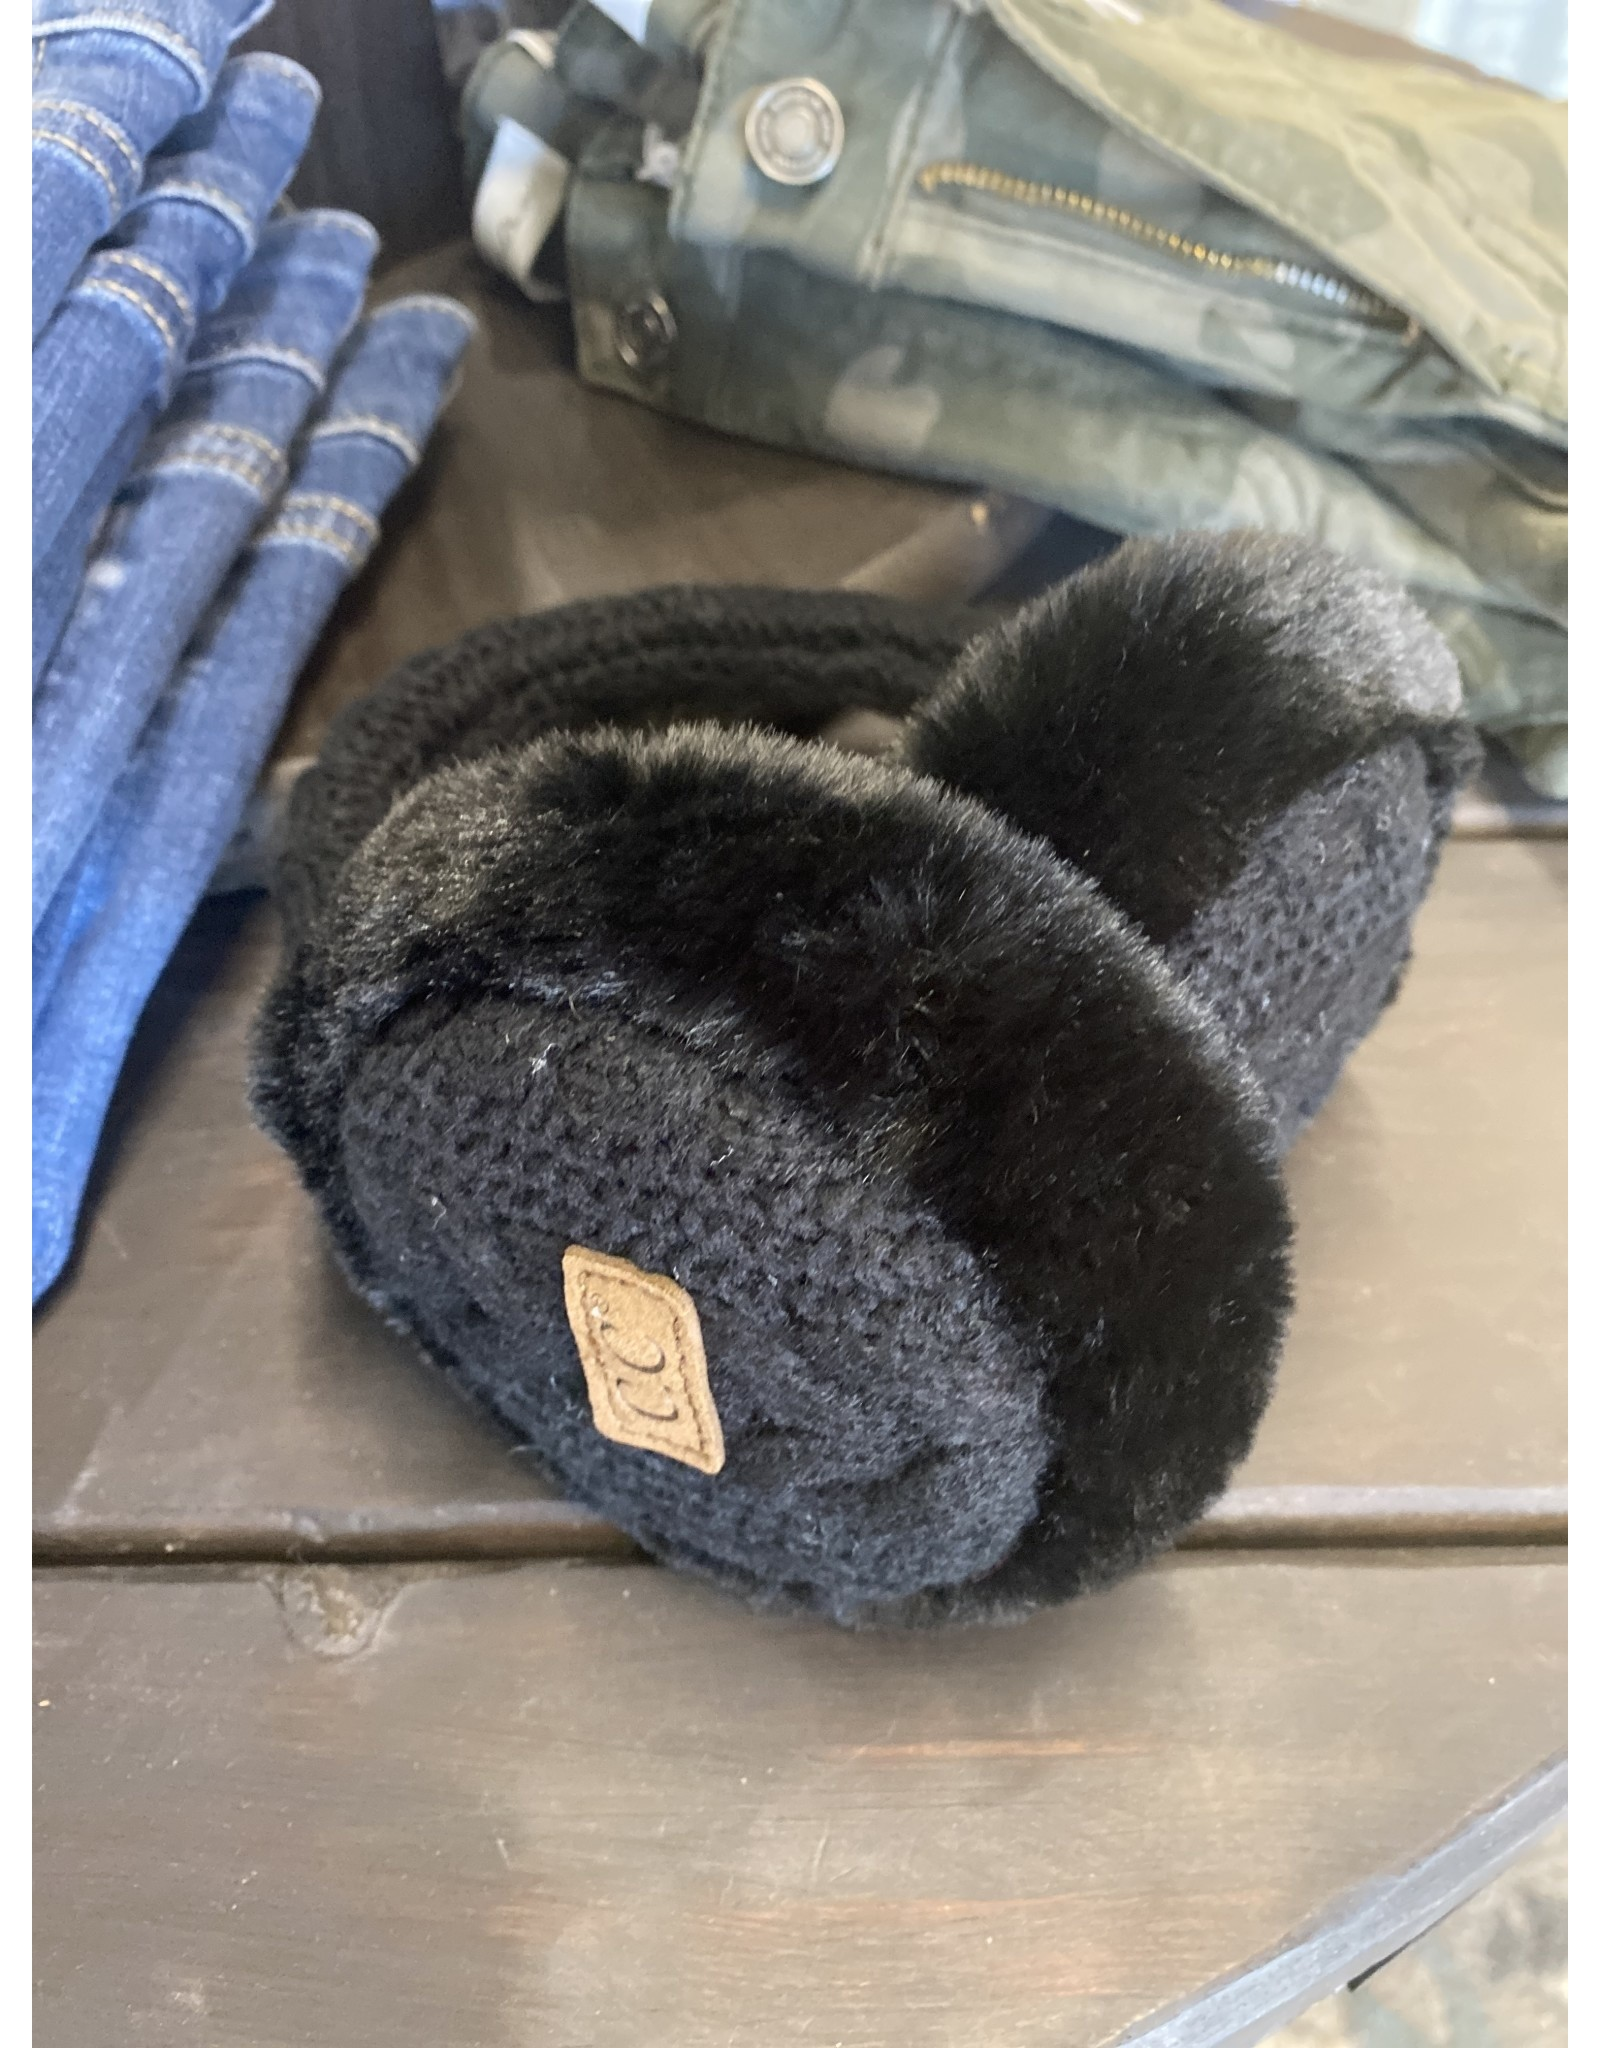 EAR MUFF - GREY CABLE KNIT EM3661